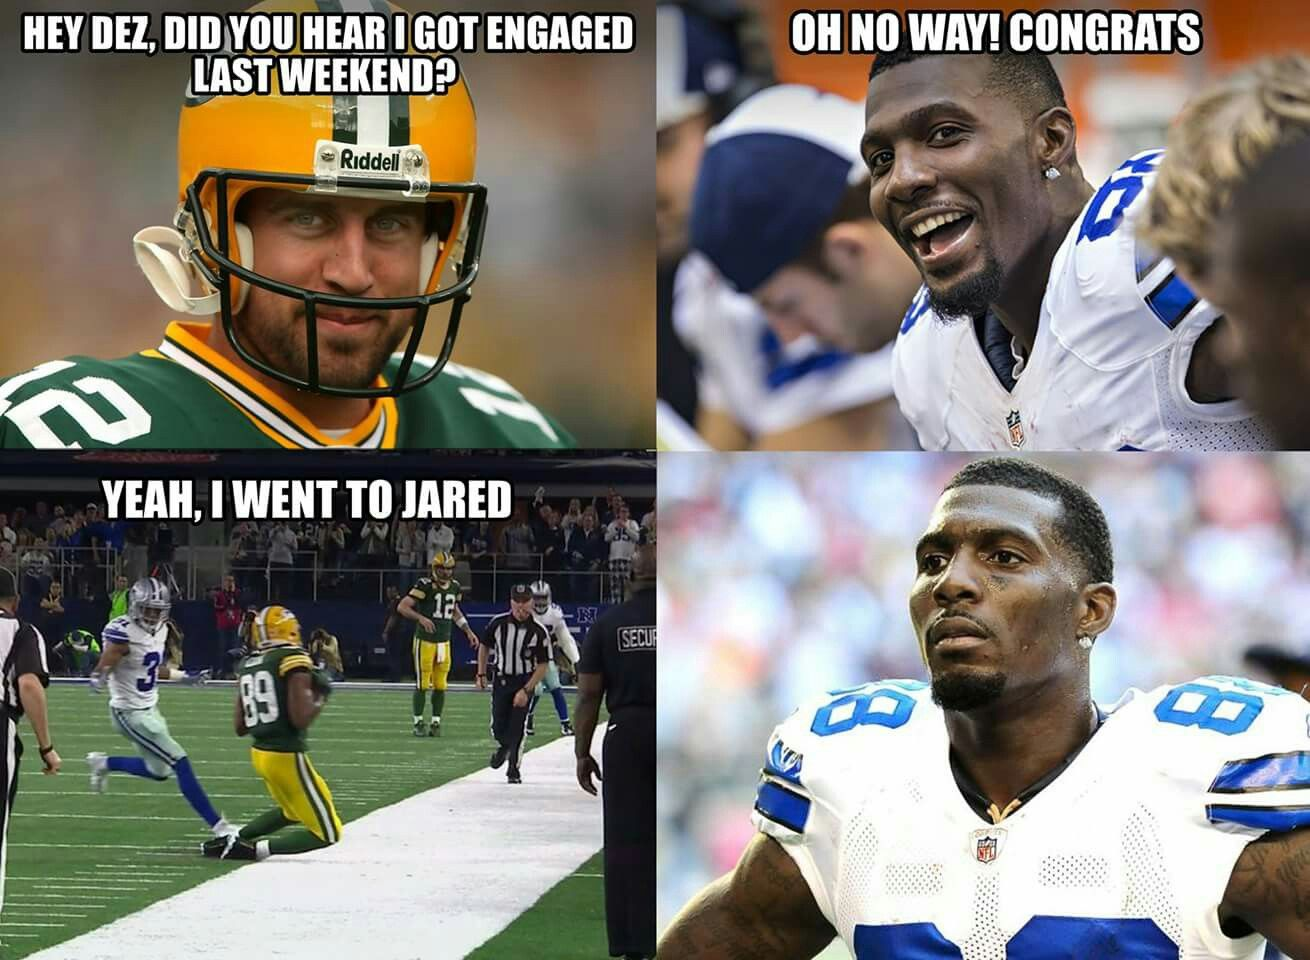 Pin By Erika Benfield On Green Bay Packers Nfl Memes Green Bay Packers Football Football Funny